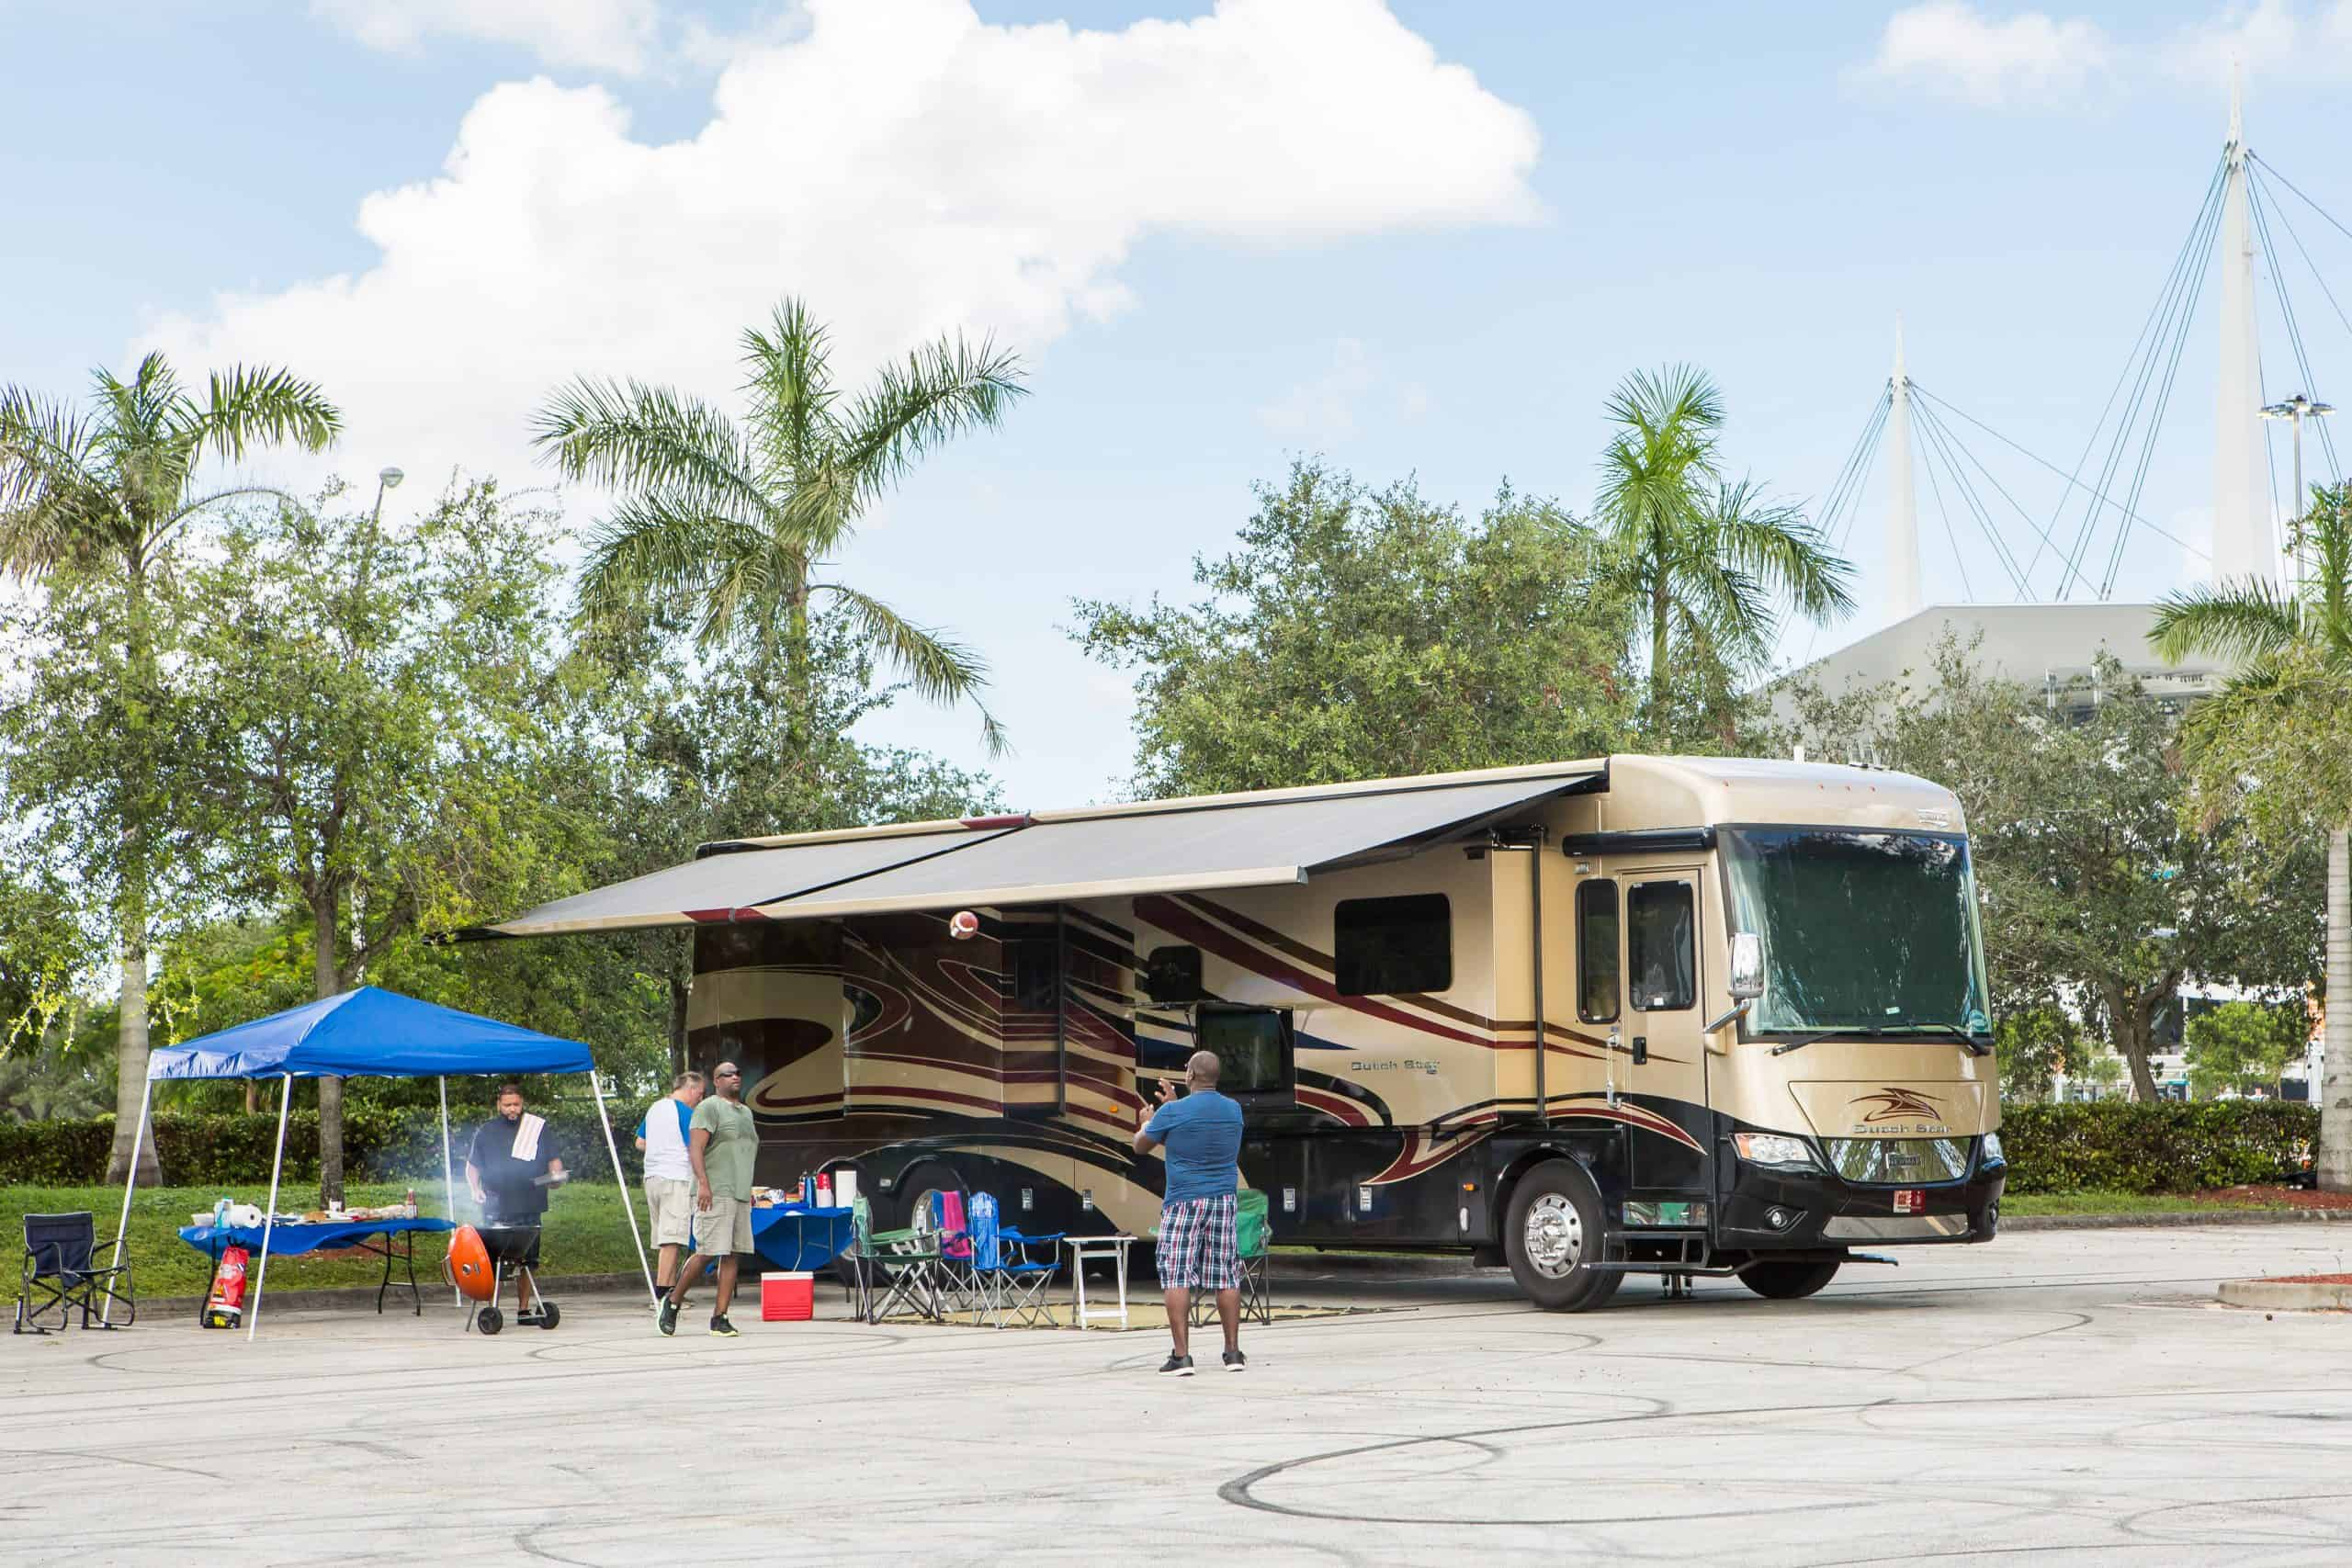 Long motorhome Rent an RV for the weekend